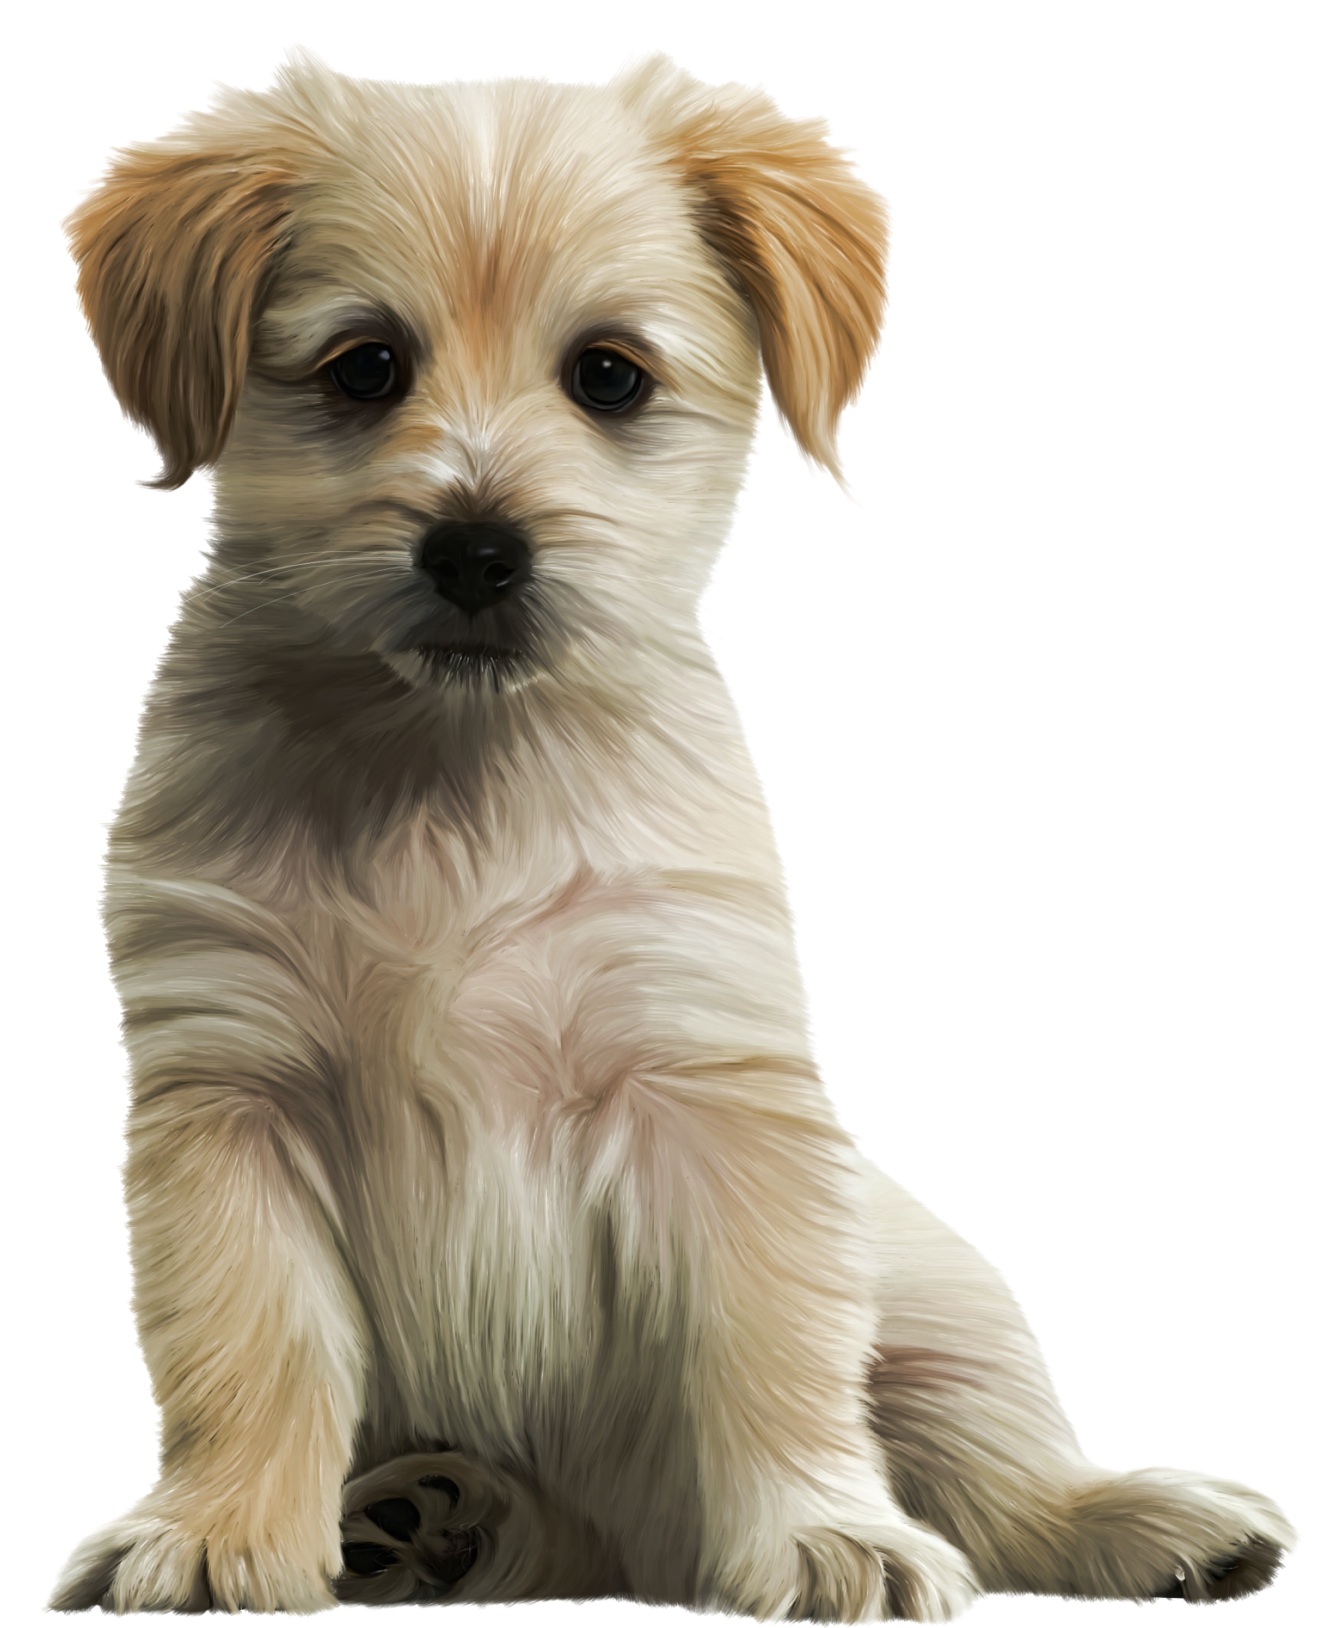 Cute dog png. Puppy clipart image gallery